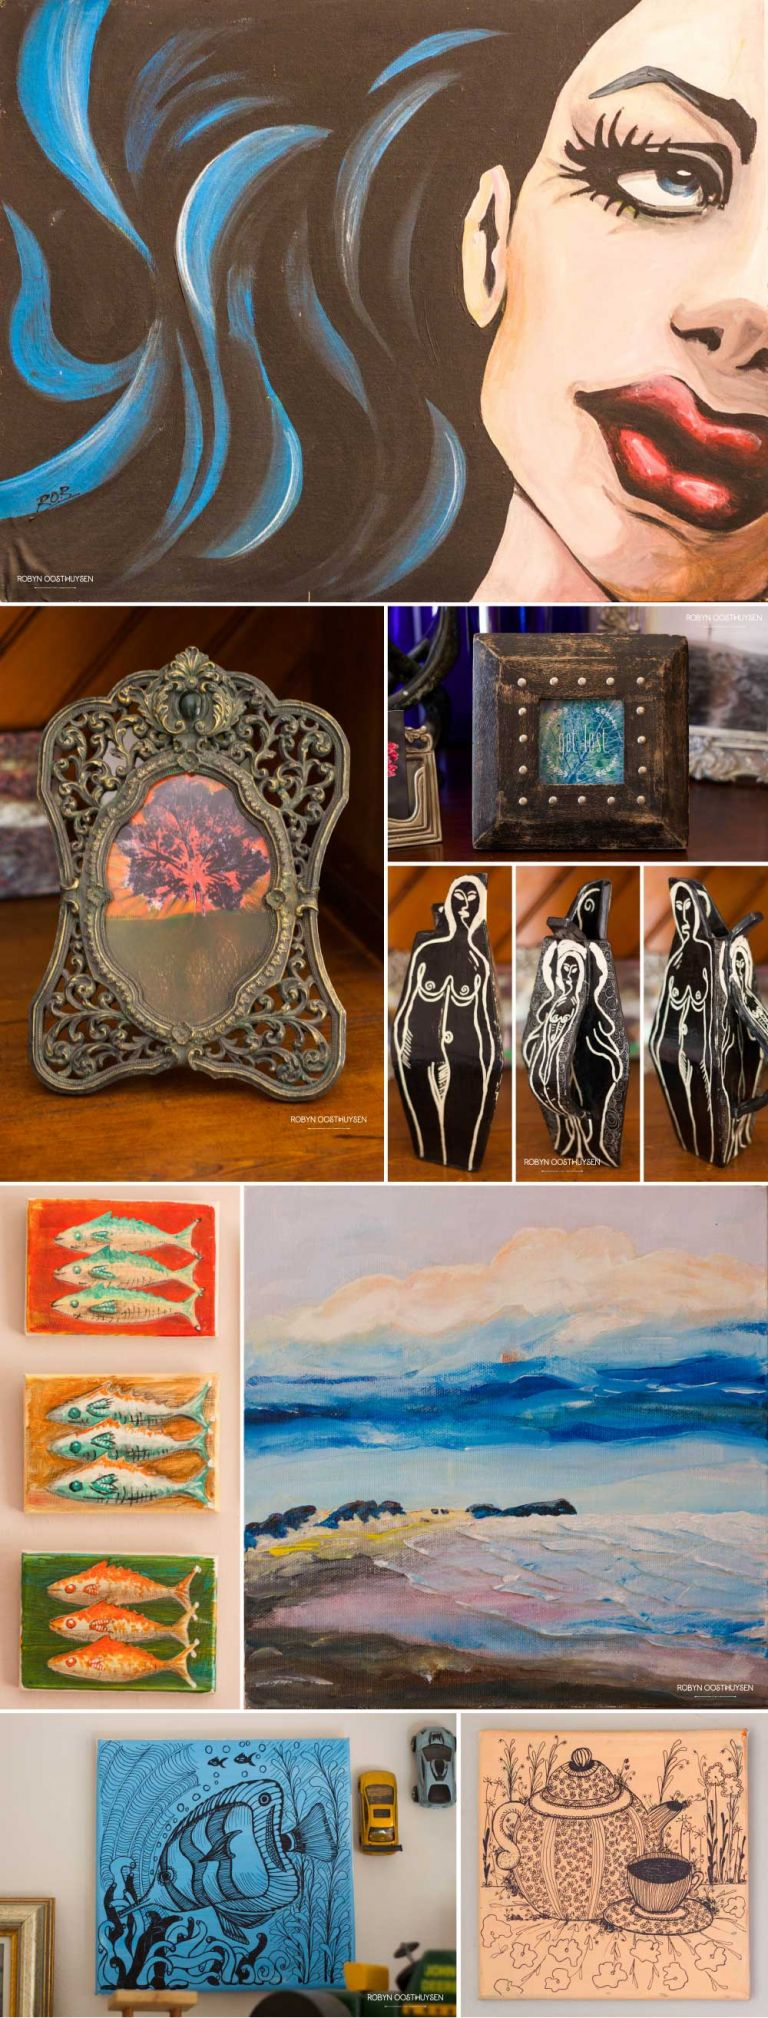 Design Ardour: Art & Design by Robyn Oosthuysen | painting | ceramics | roller press printing | portrait | fish